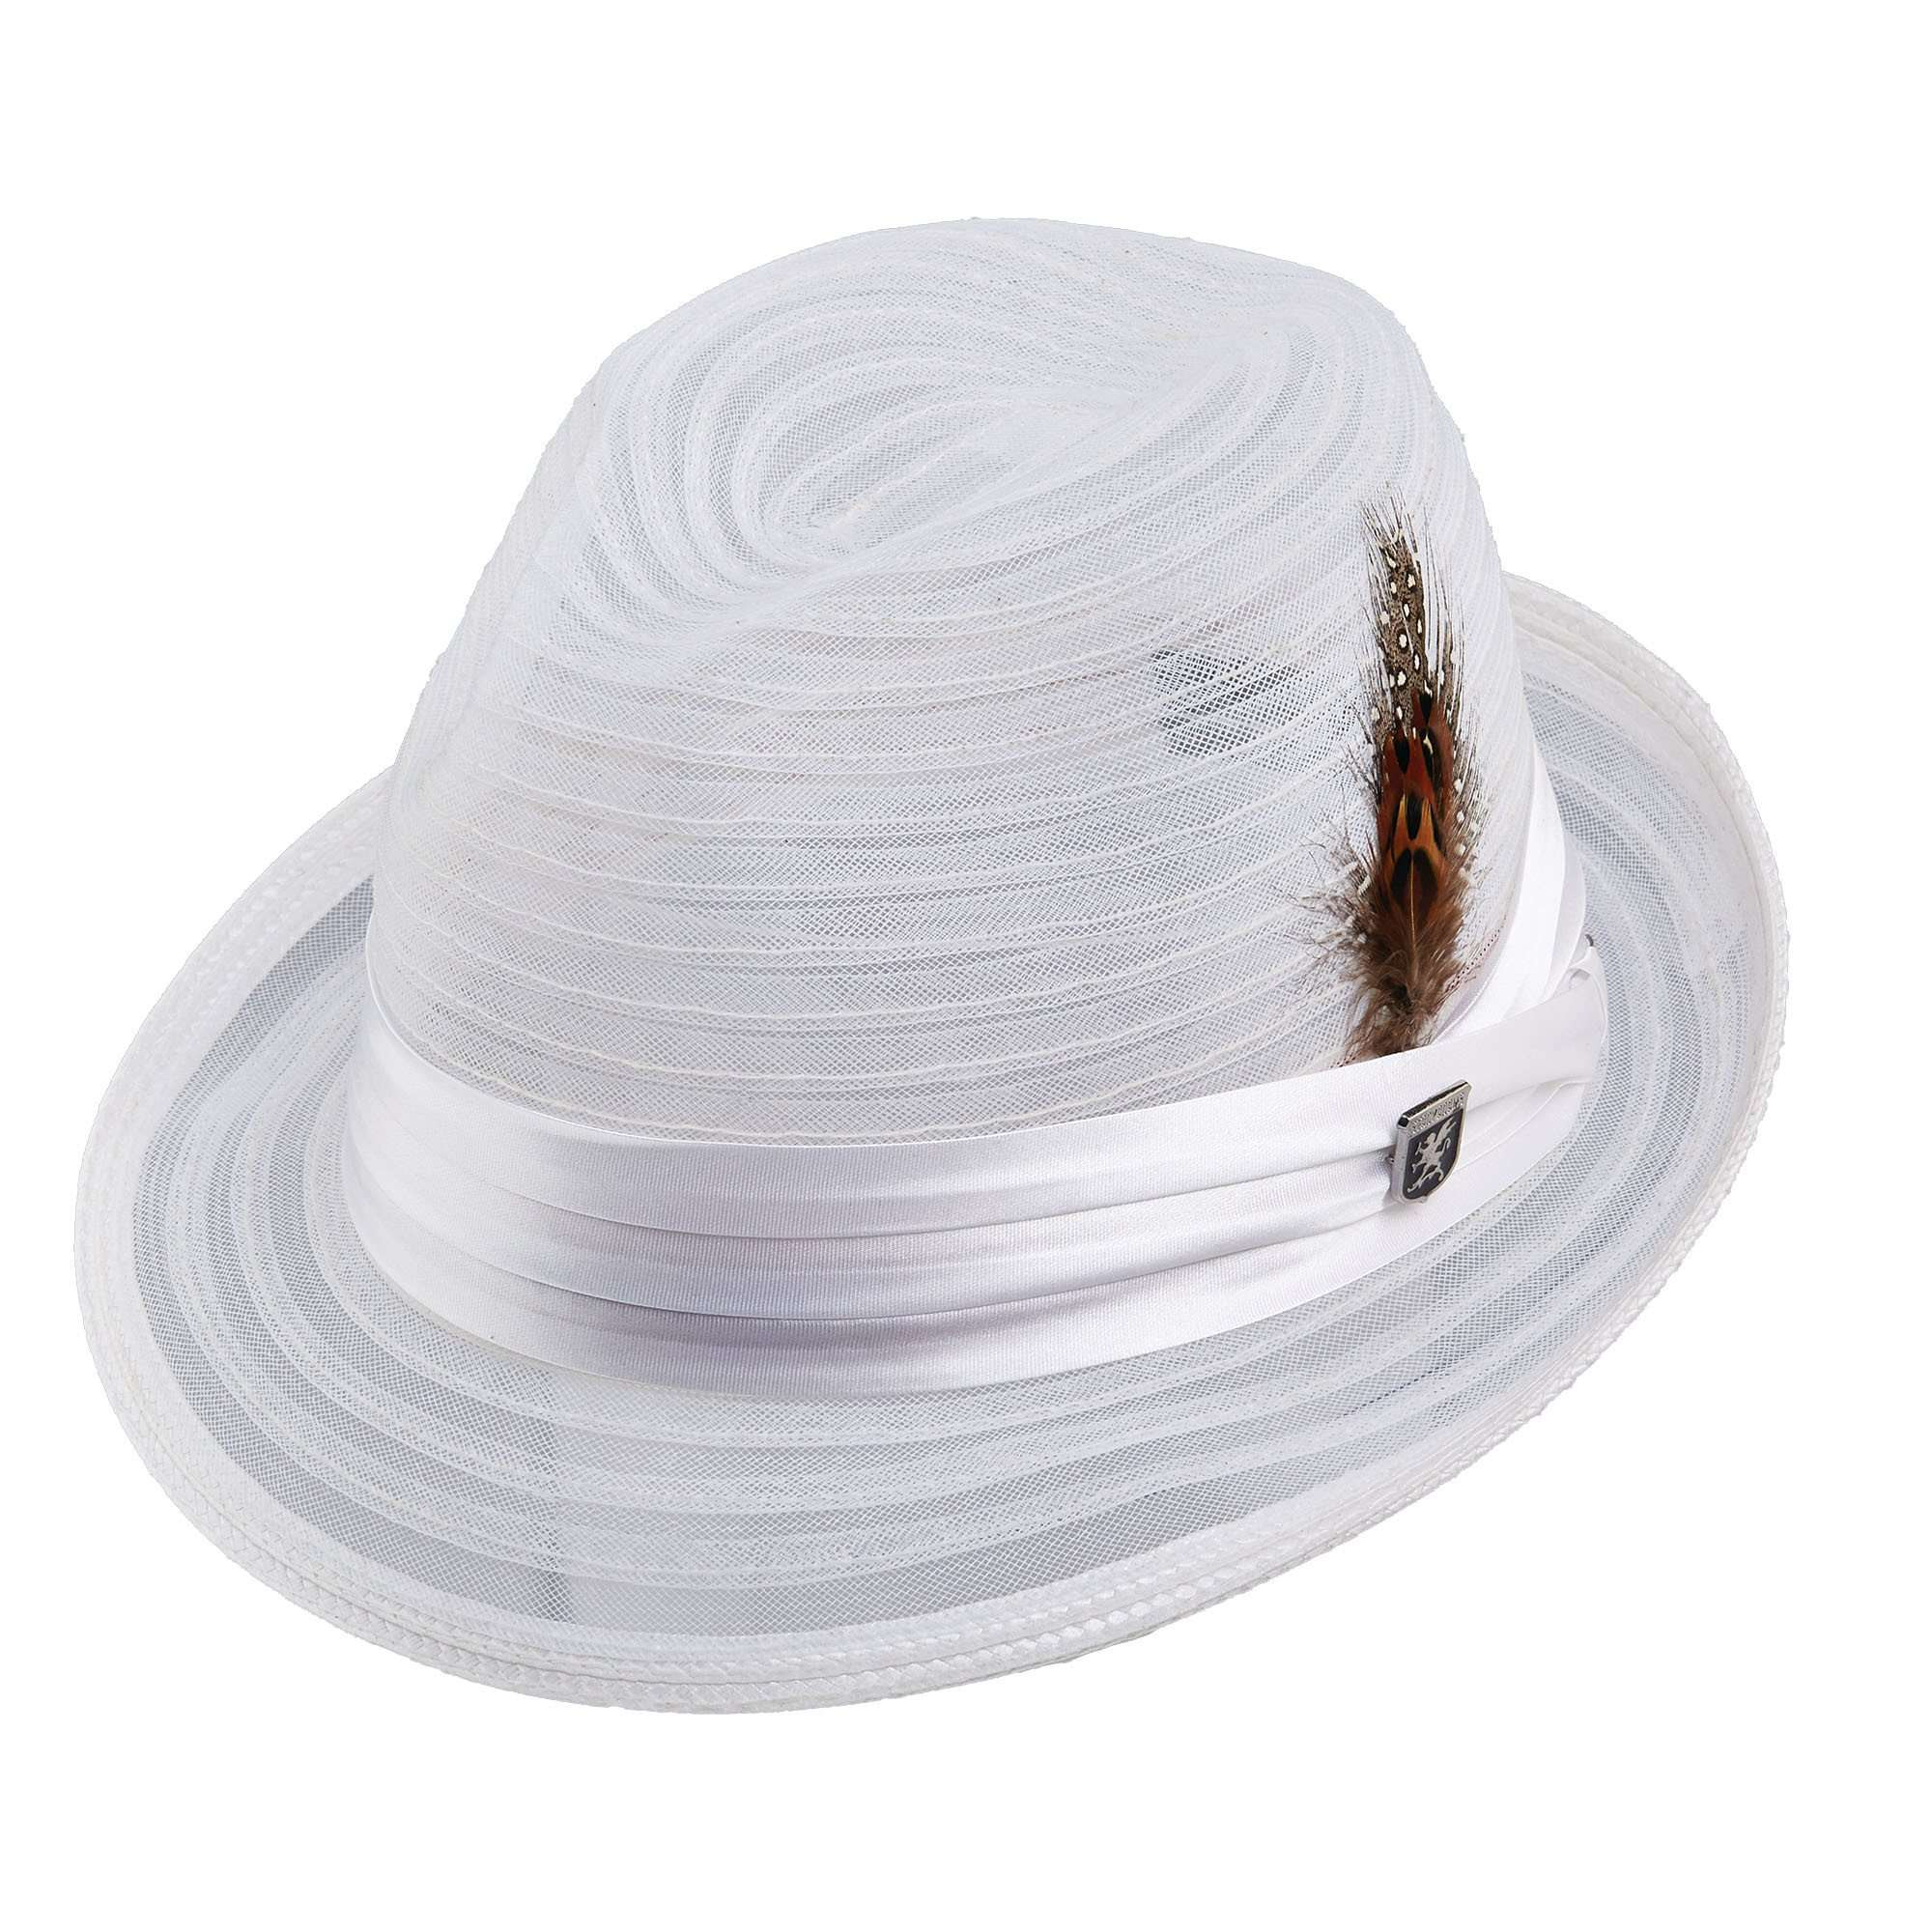 Stacy Adams Sinamay Mesh Fedora - SetarTrading Hats c5b4c7a32f79